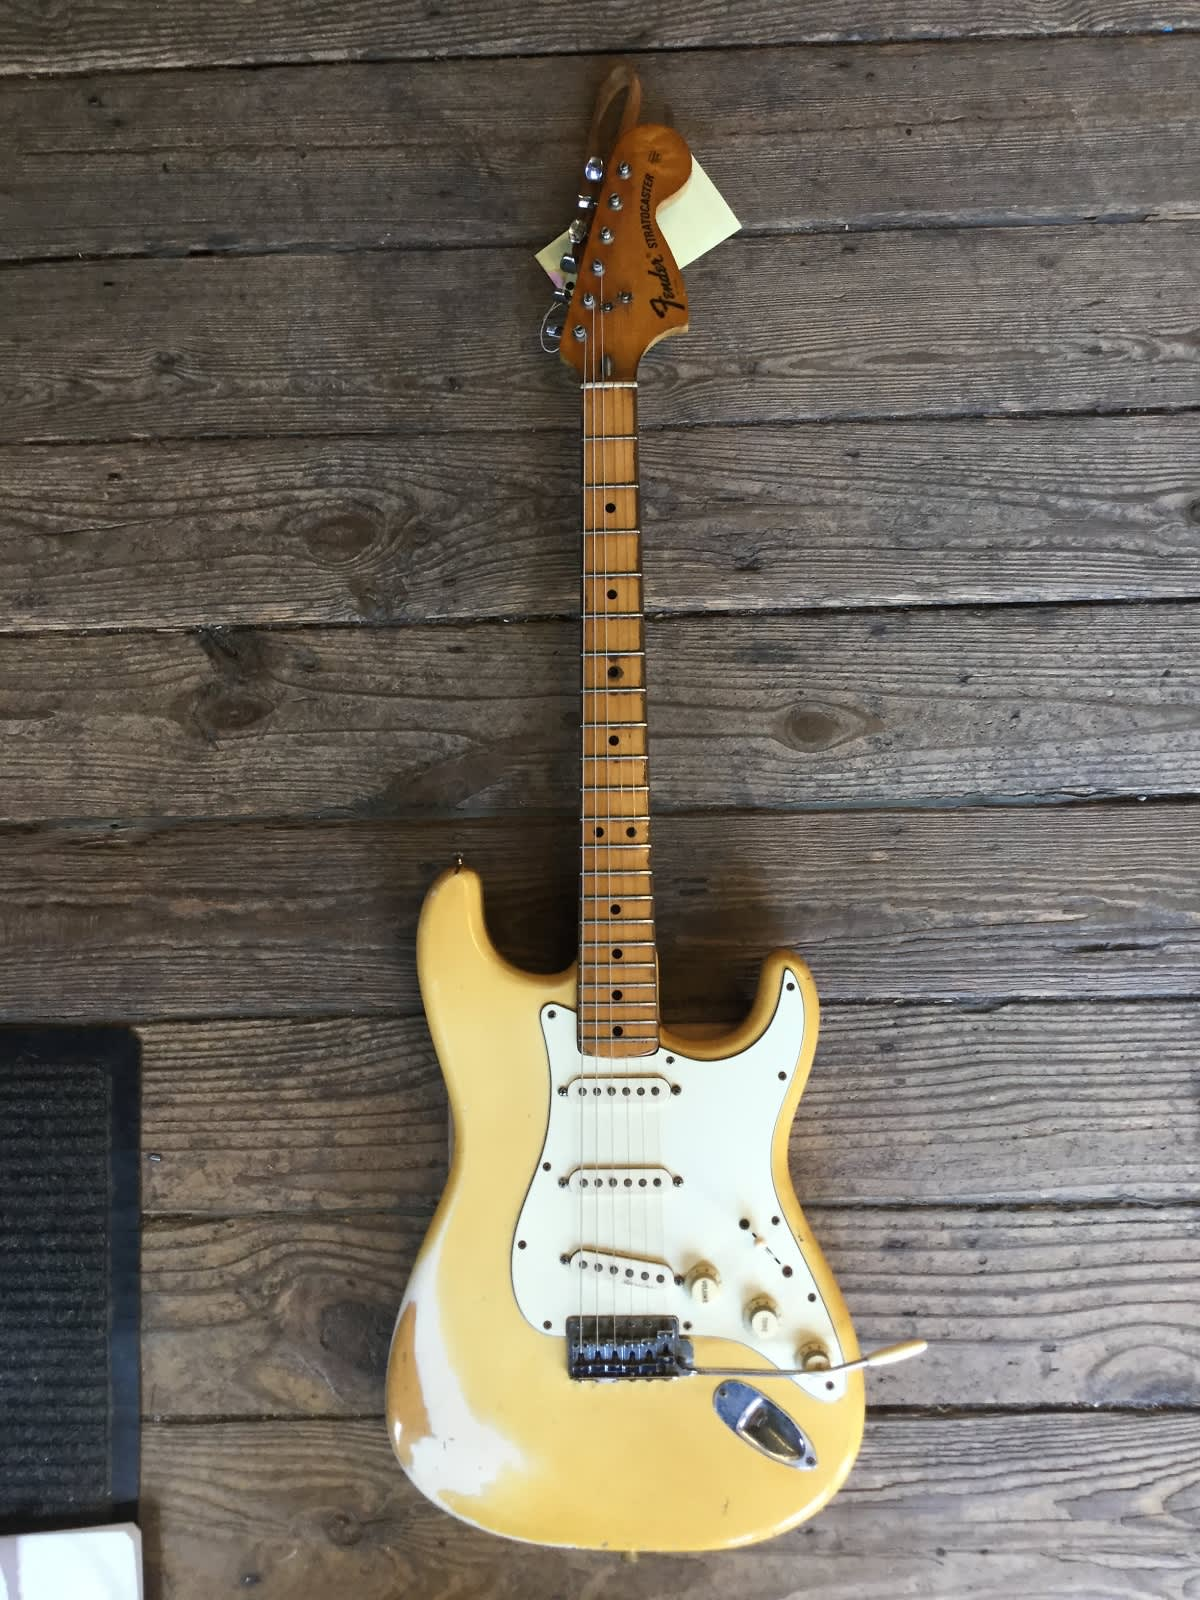 fender stratocaster 1973 yellowed olympic white reverb. Black Bedroom Furniture Sets. Home Design Ideas